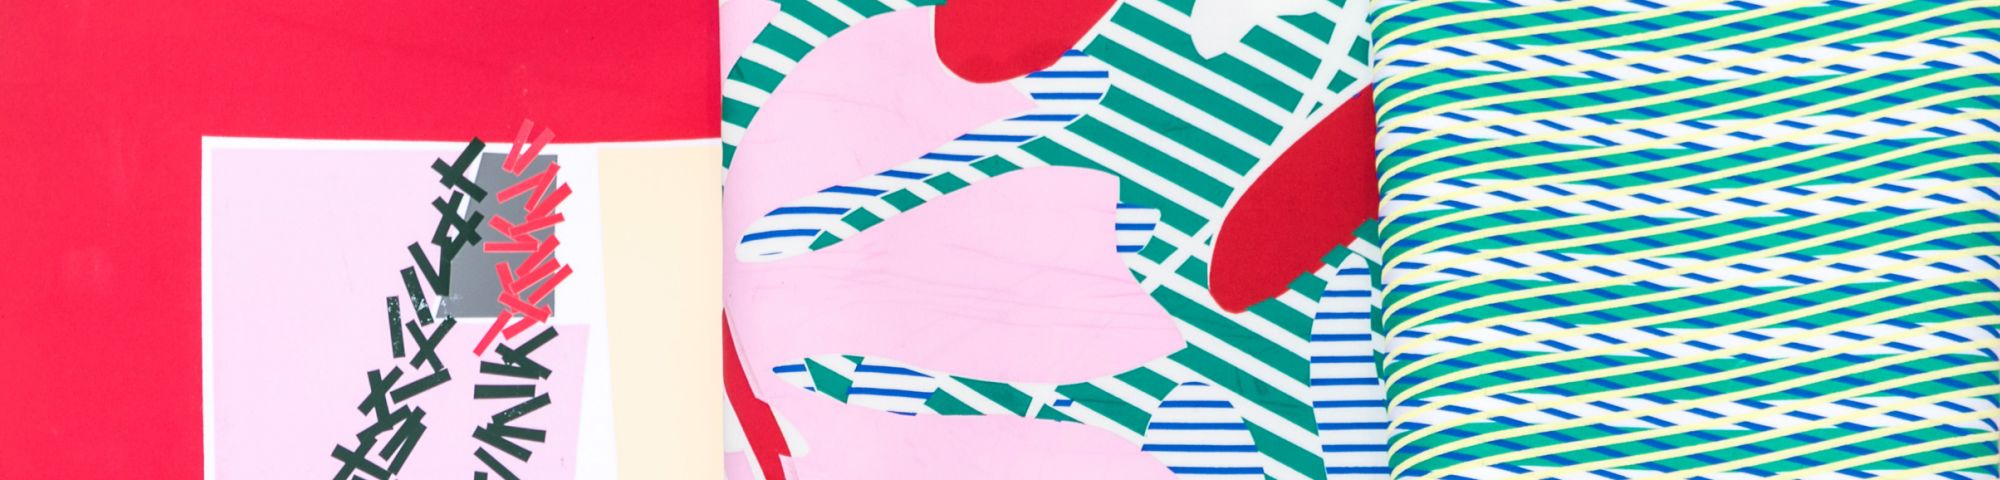 Brightly coloured pink and blue patterned material